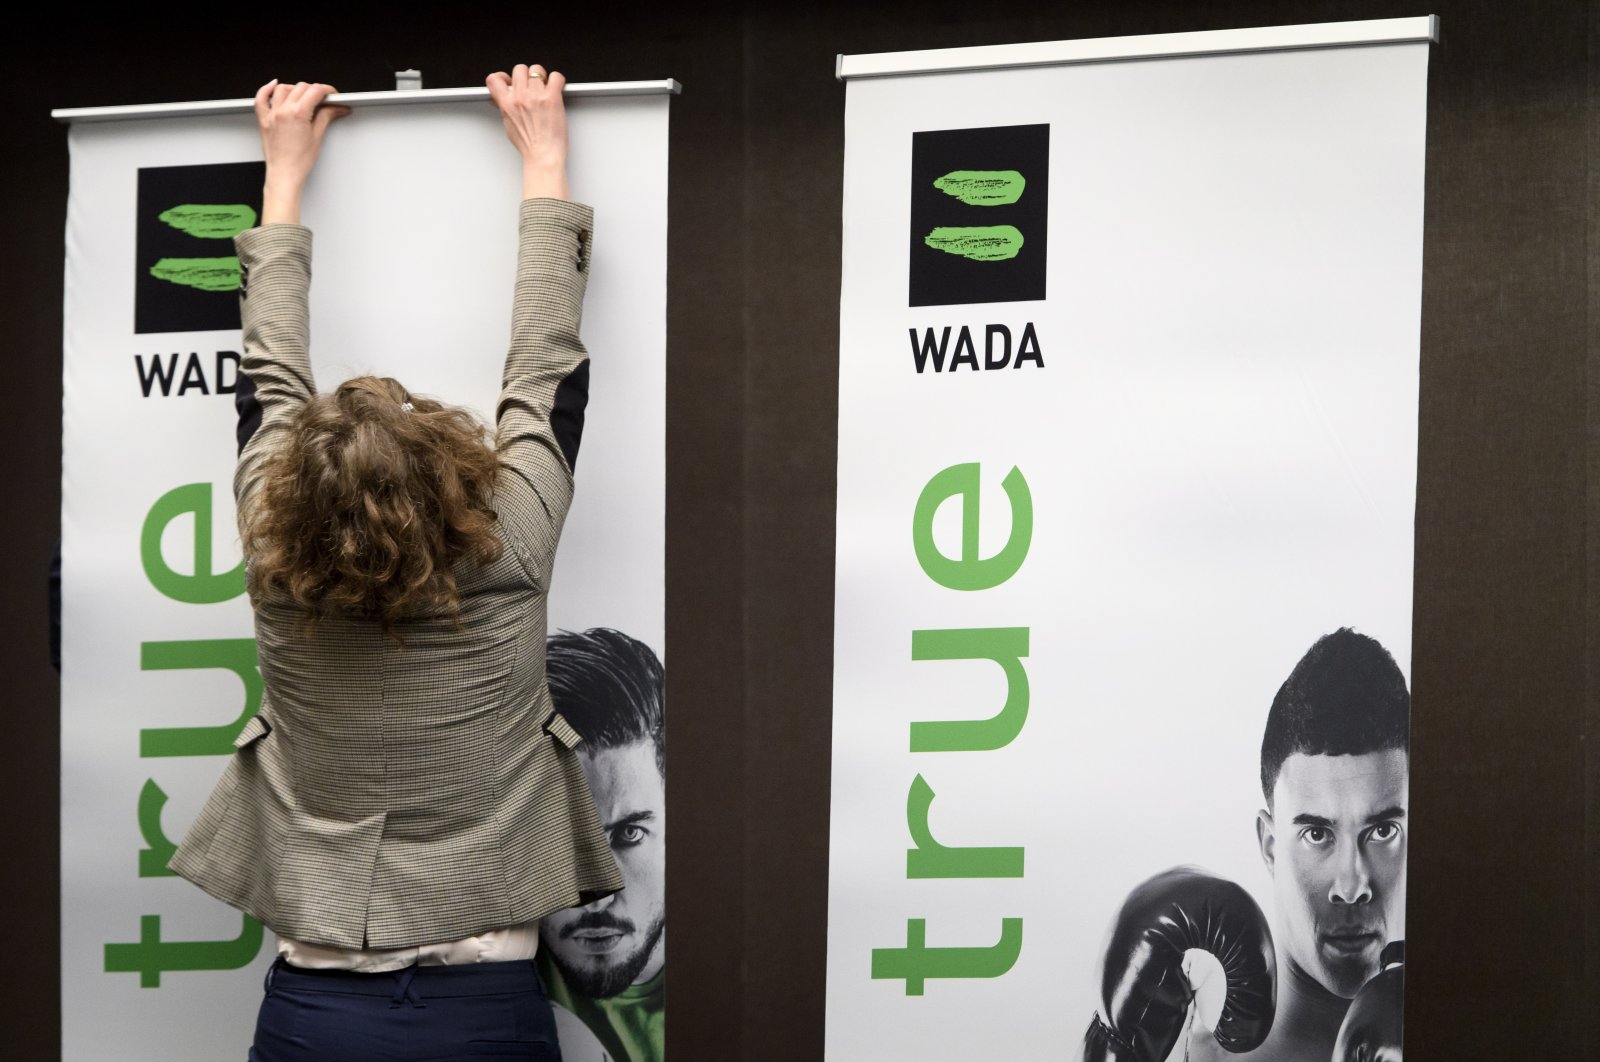 A World Anti-Doping Agency (WADA) employee mounts a banner featuring the WADA logo, at a press conference in Lausanne, Switzerland, Dec. 9, 2019. (EPA Photo)